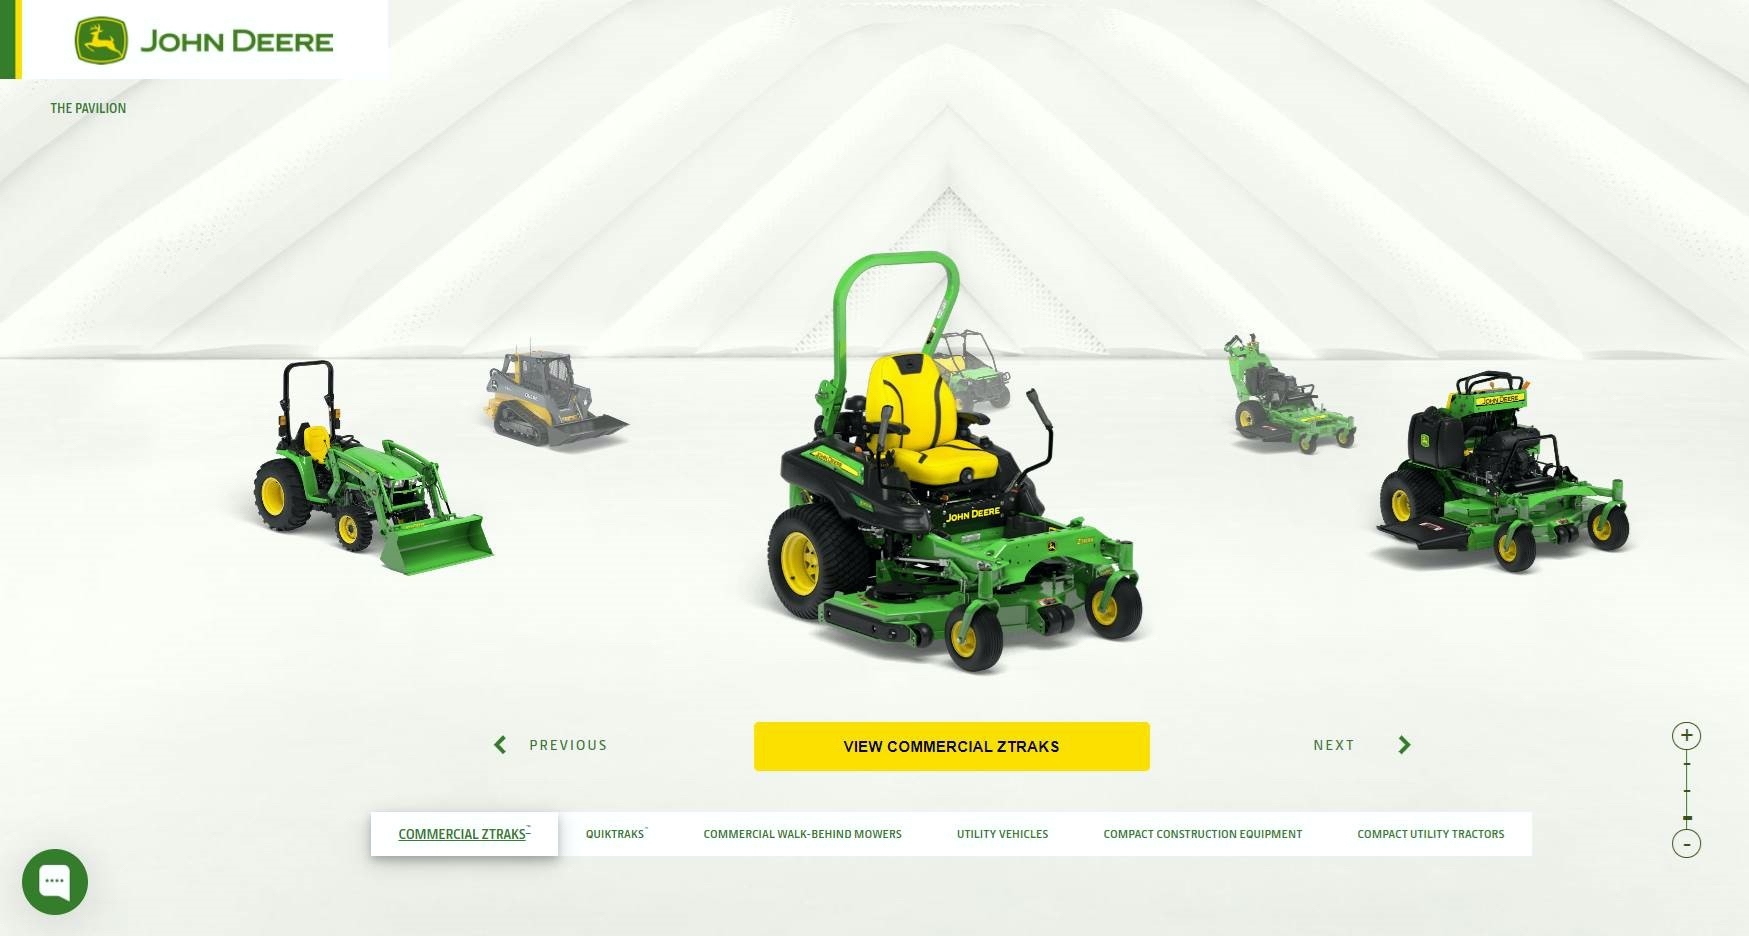 John Deere's interactive equipment gallery for landscaping professionals